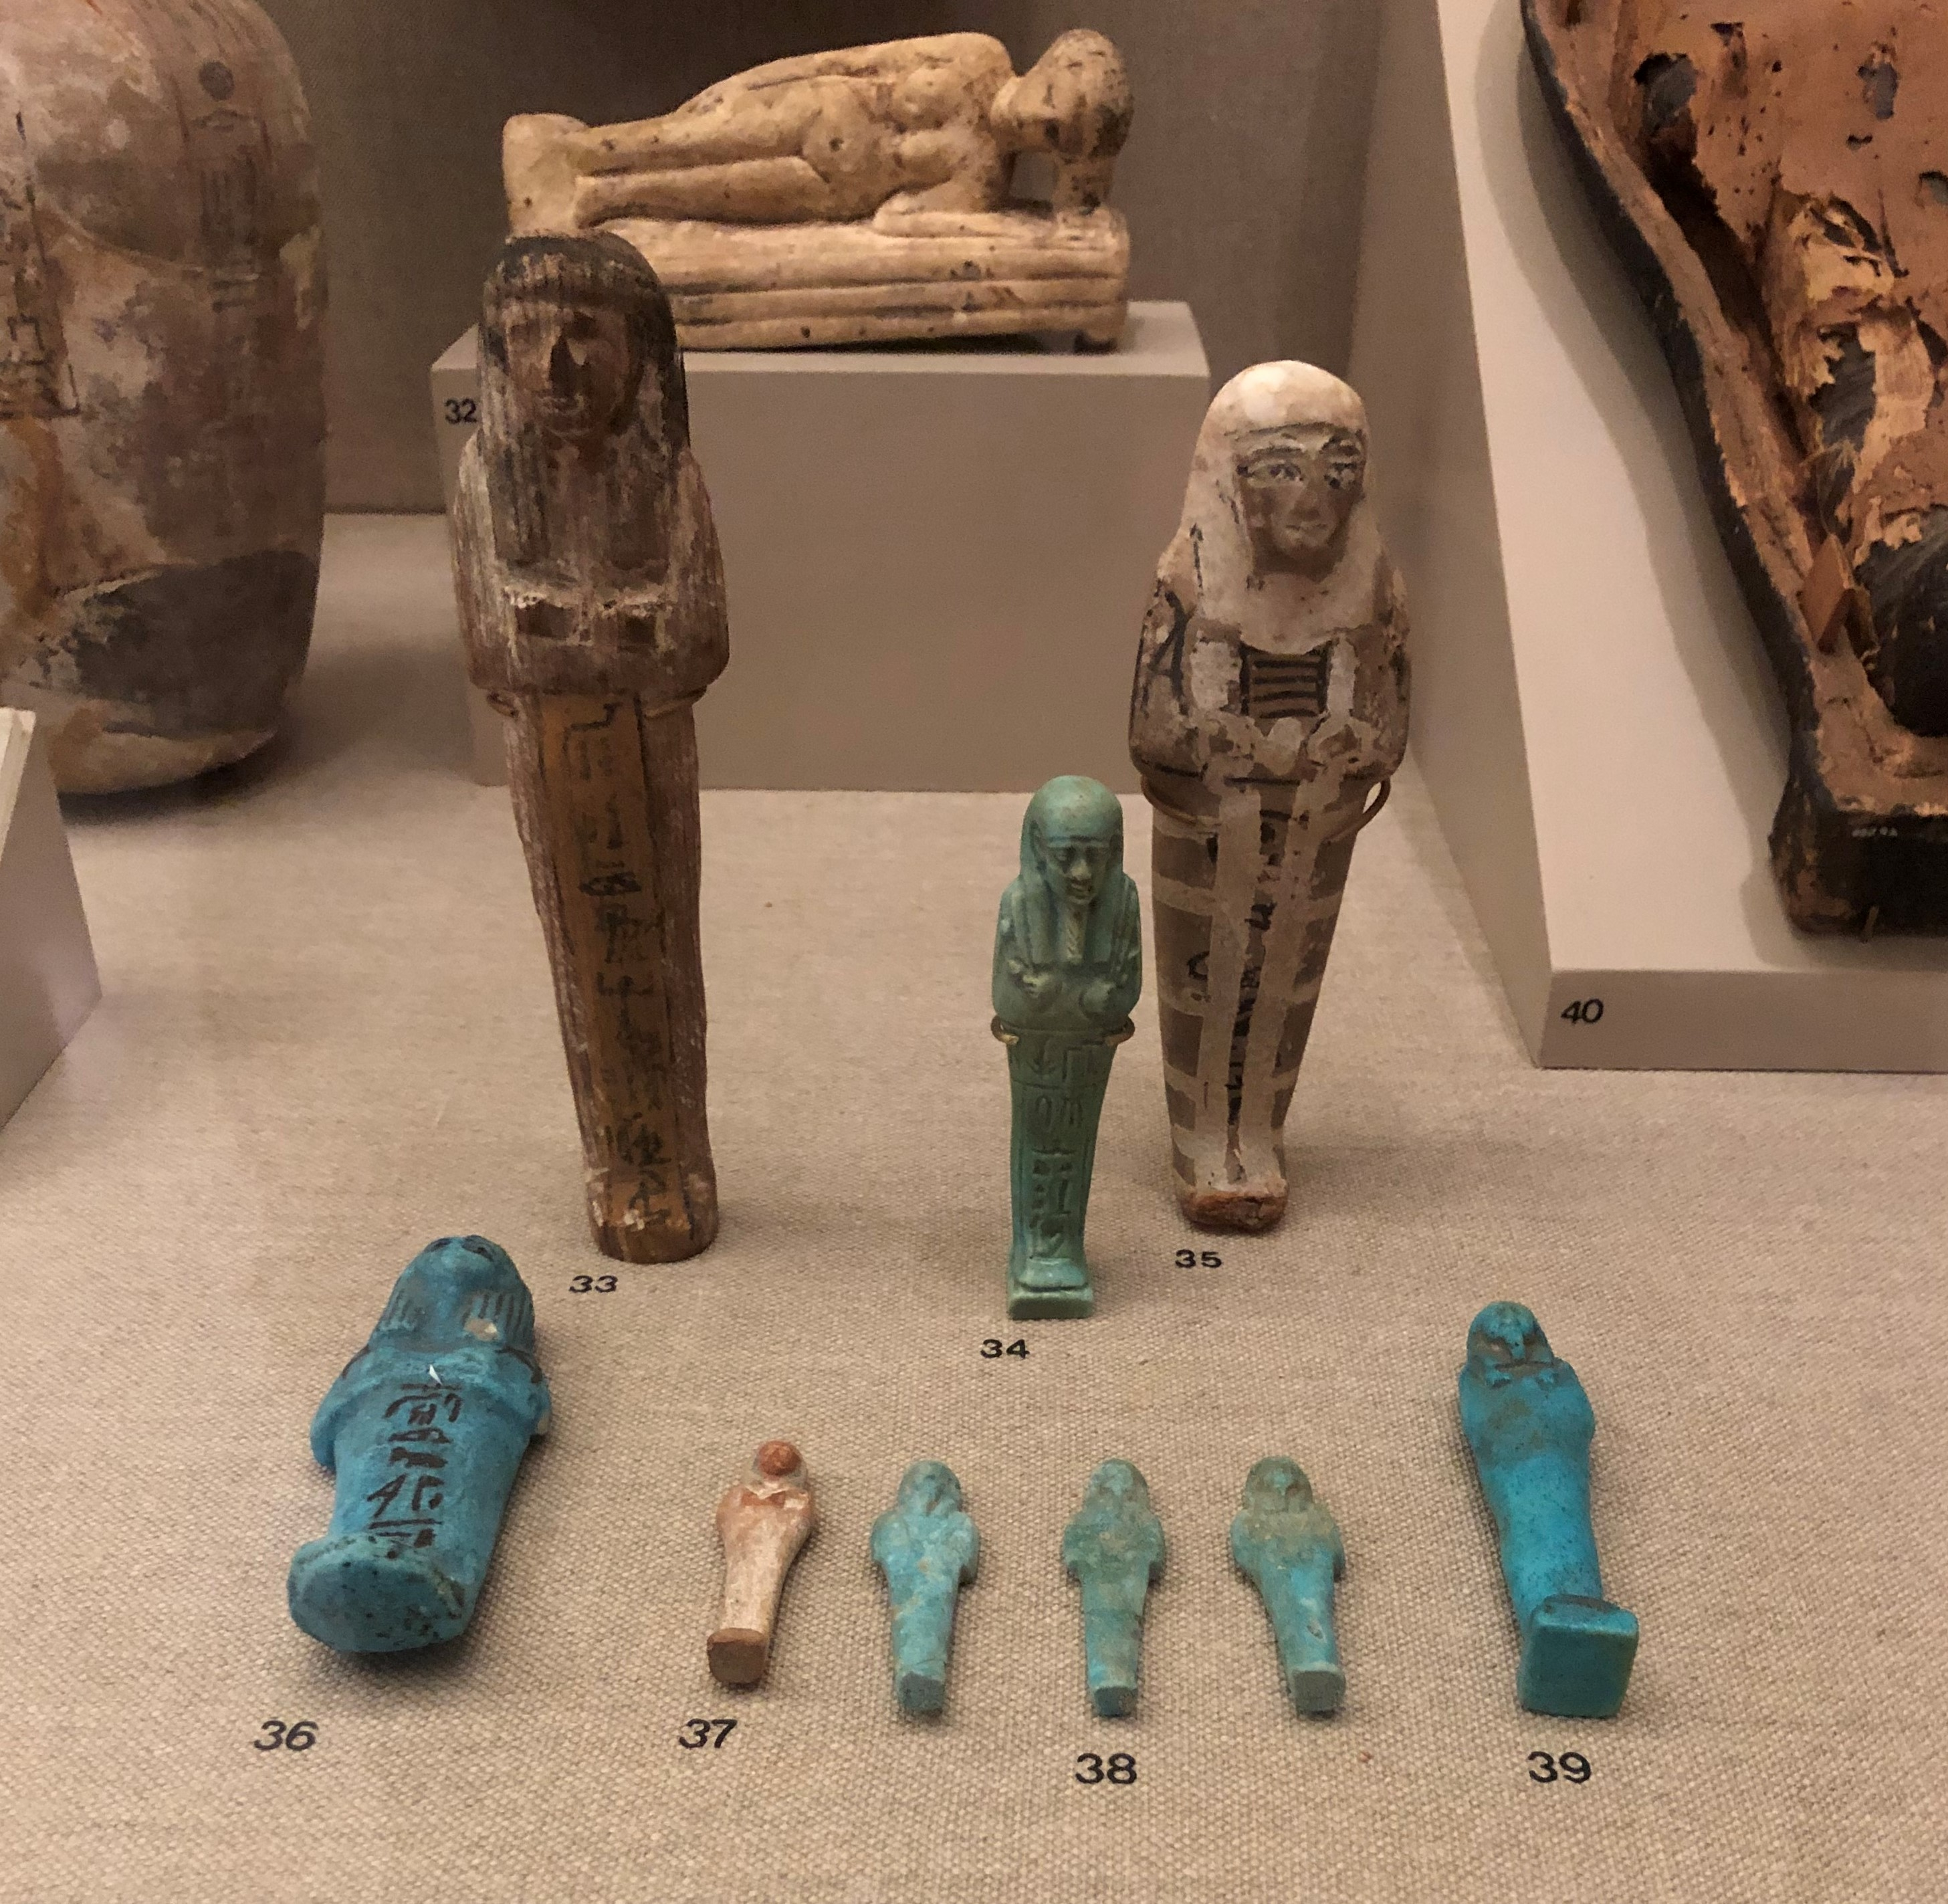 Display of ancient Egyptian ushabti funerary figurines at the U of M Kelsey Museum of Archaeology, one of many free things to do in Ann Arbor MI